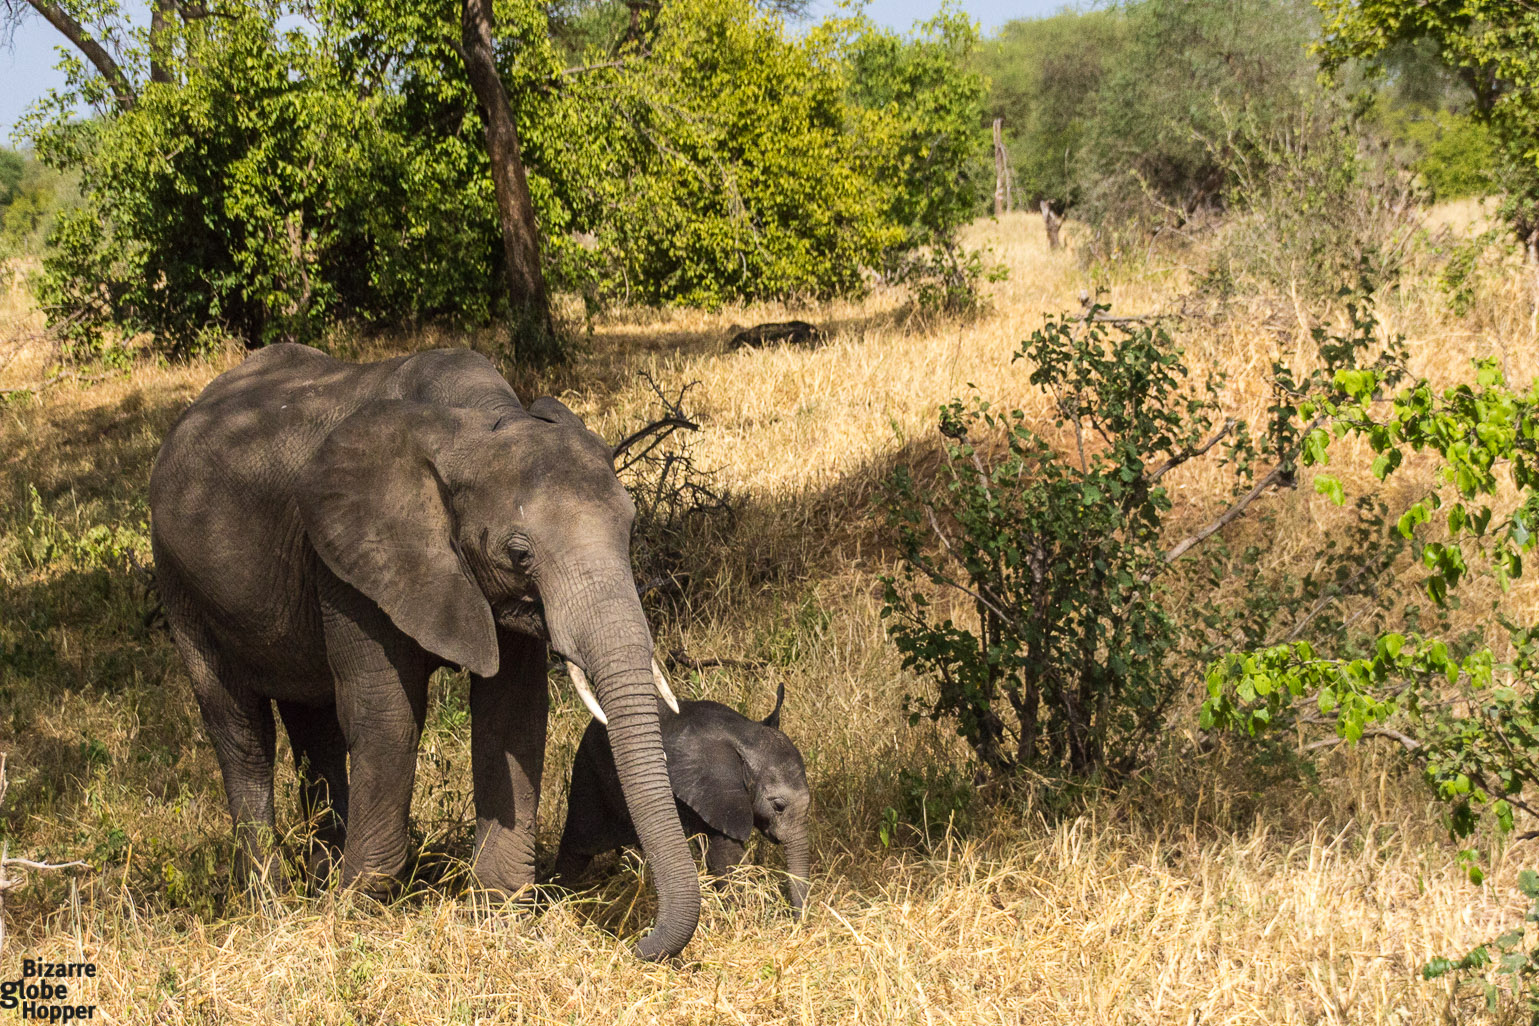 Baby elephant with its mother in Tarangire National Park in Tanzania